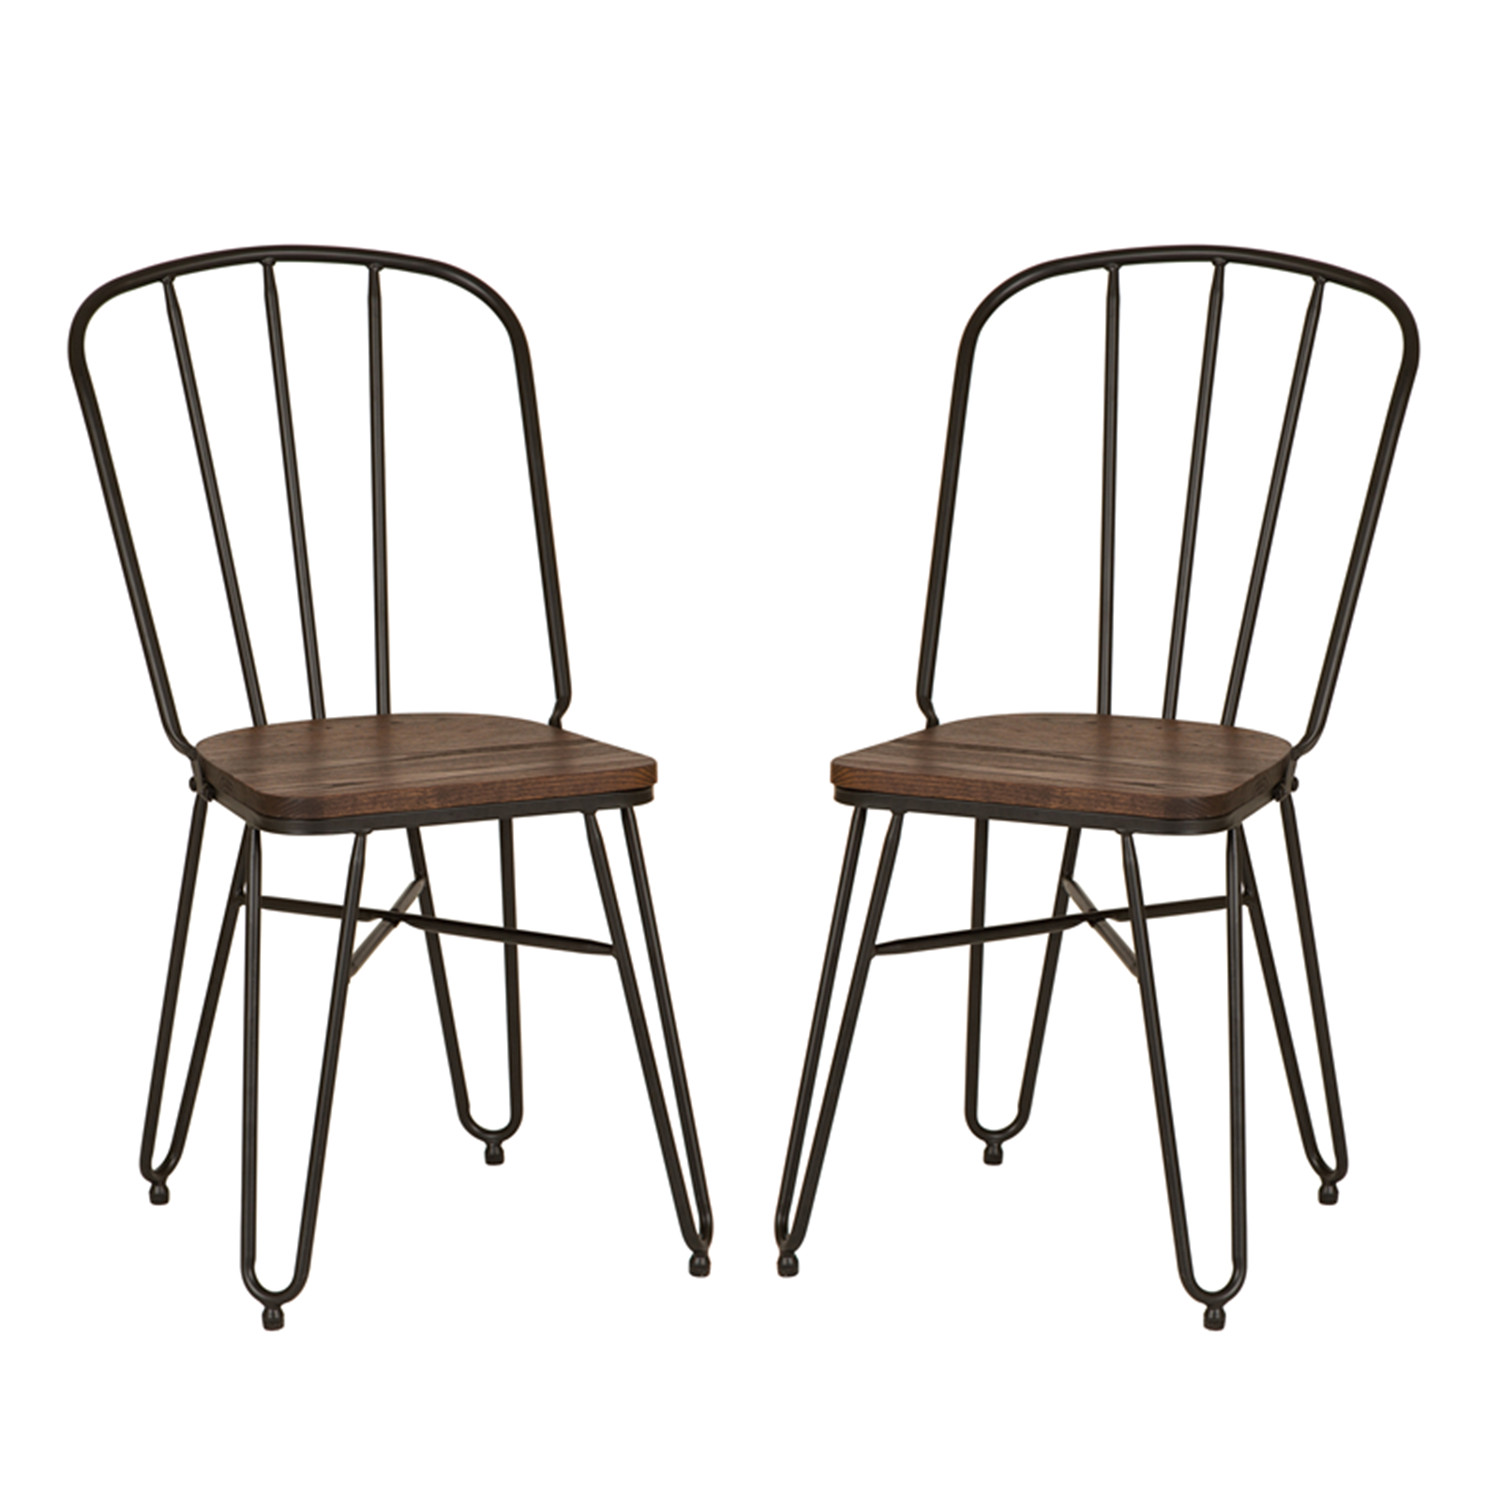 rustic metal dining chairs patio chair cushion covers glitzhome wood seat vintage industrial details about home set of 2